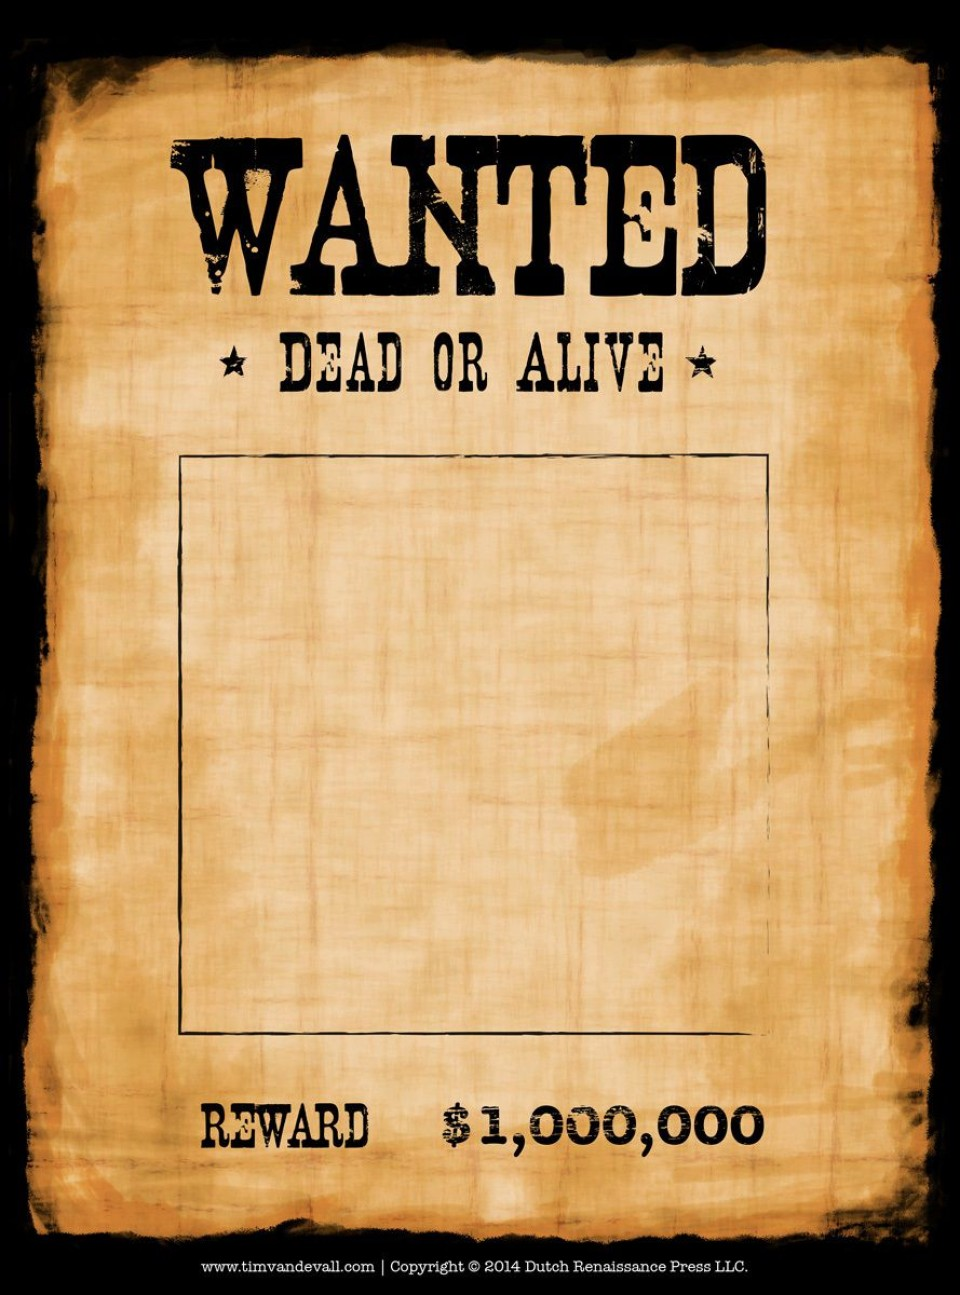 005 Stirring Wanted Poster Template Microsoft Word High Definition  Western Most960